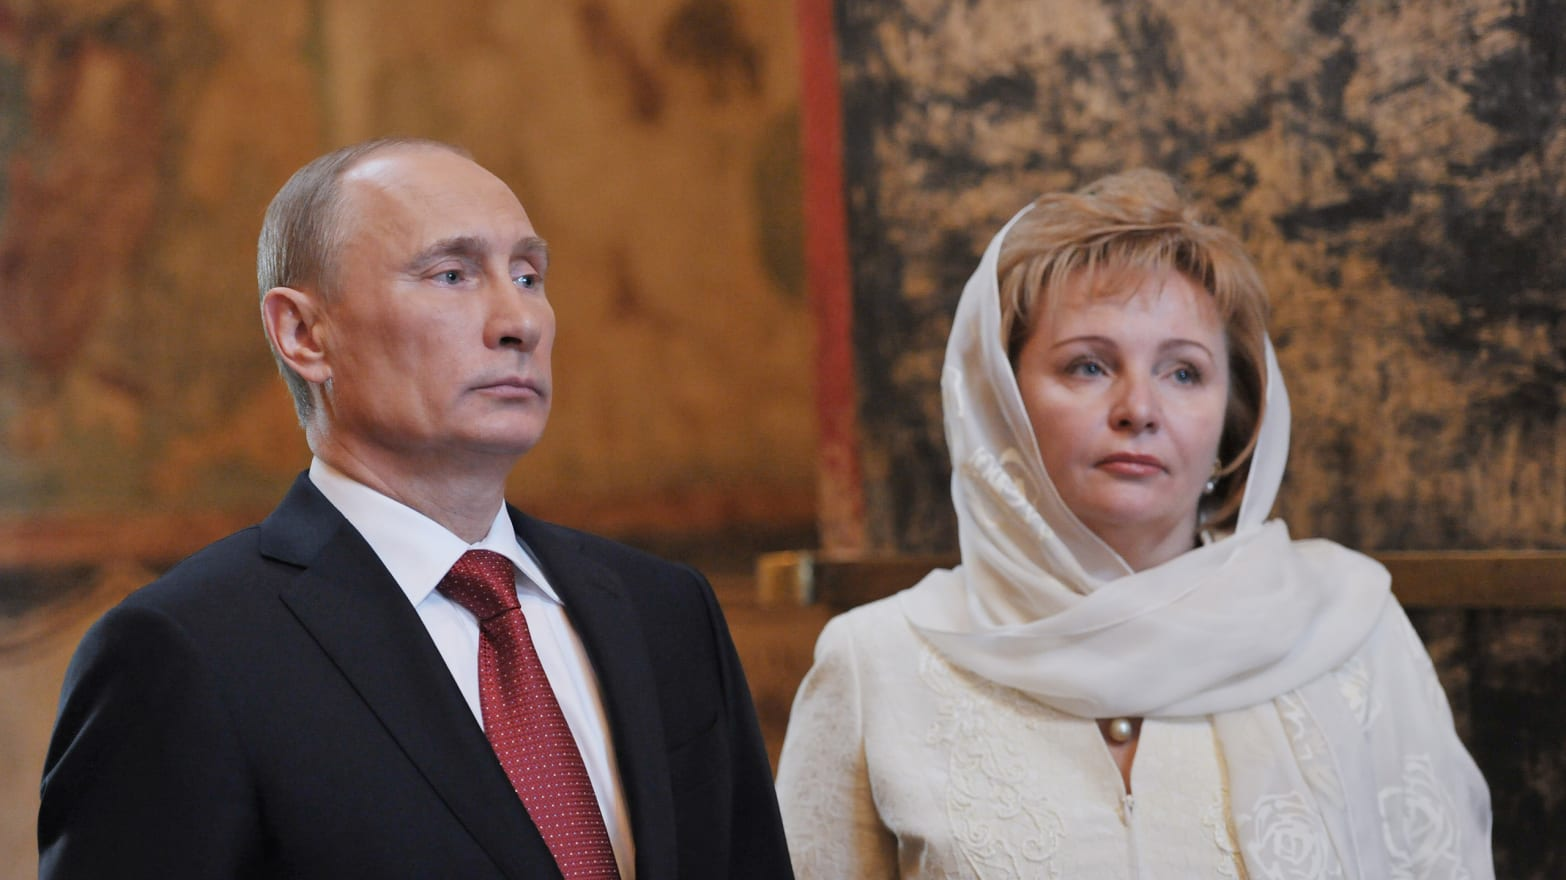 Vladimir Putin's Wife, Lyudmila, Has All but Vanished and ...